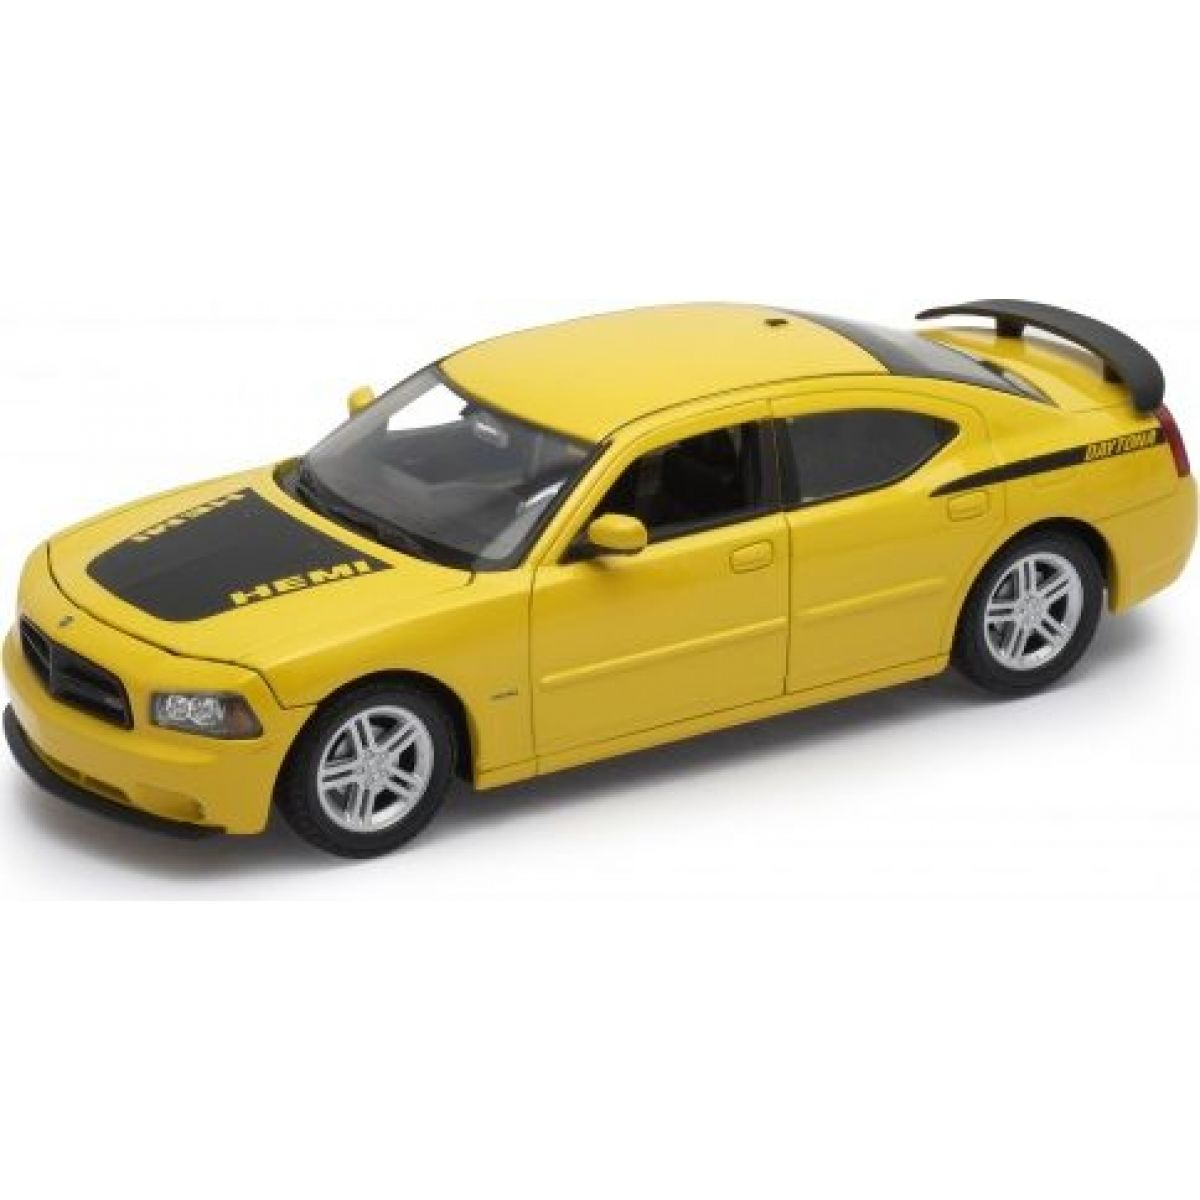 Welly Auto Dodge Charger Daytona 1:24